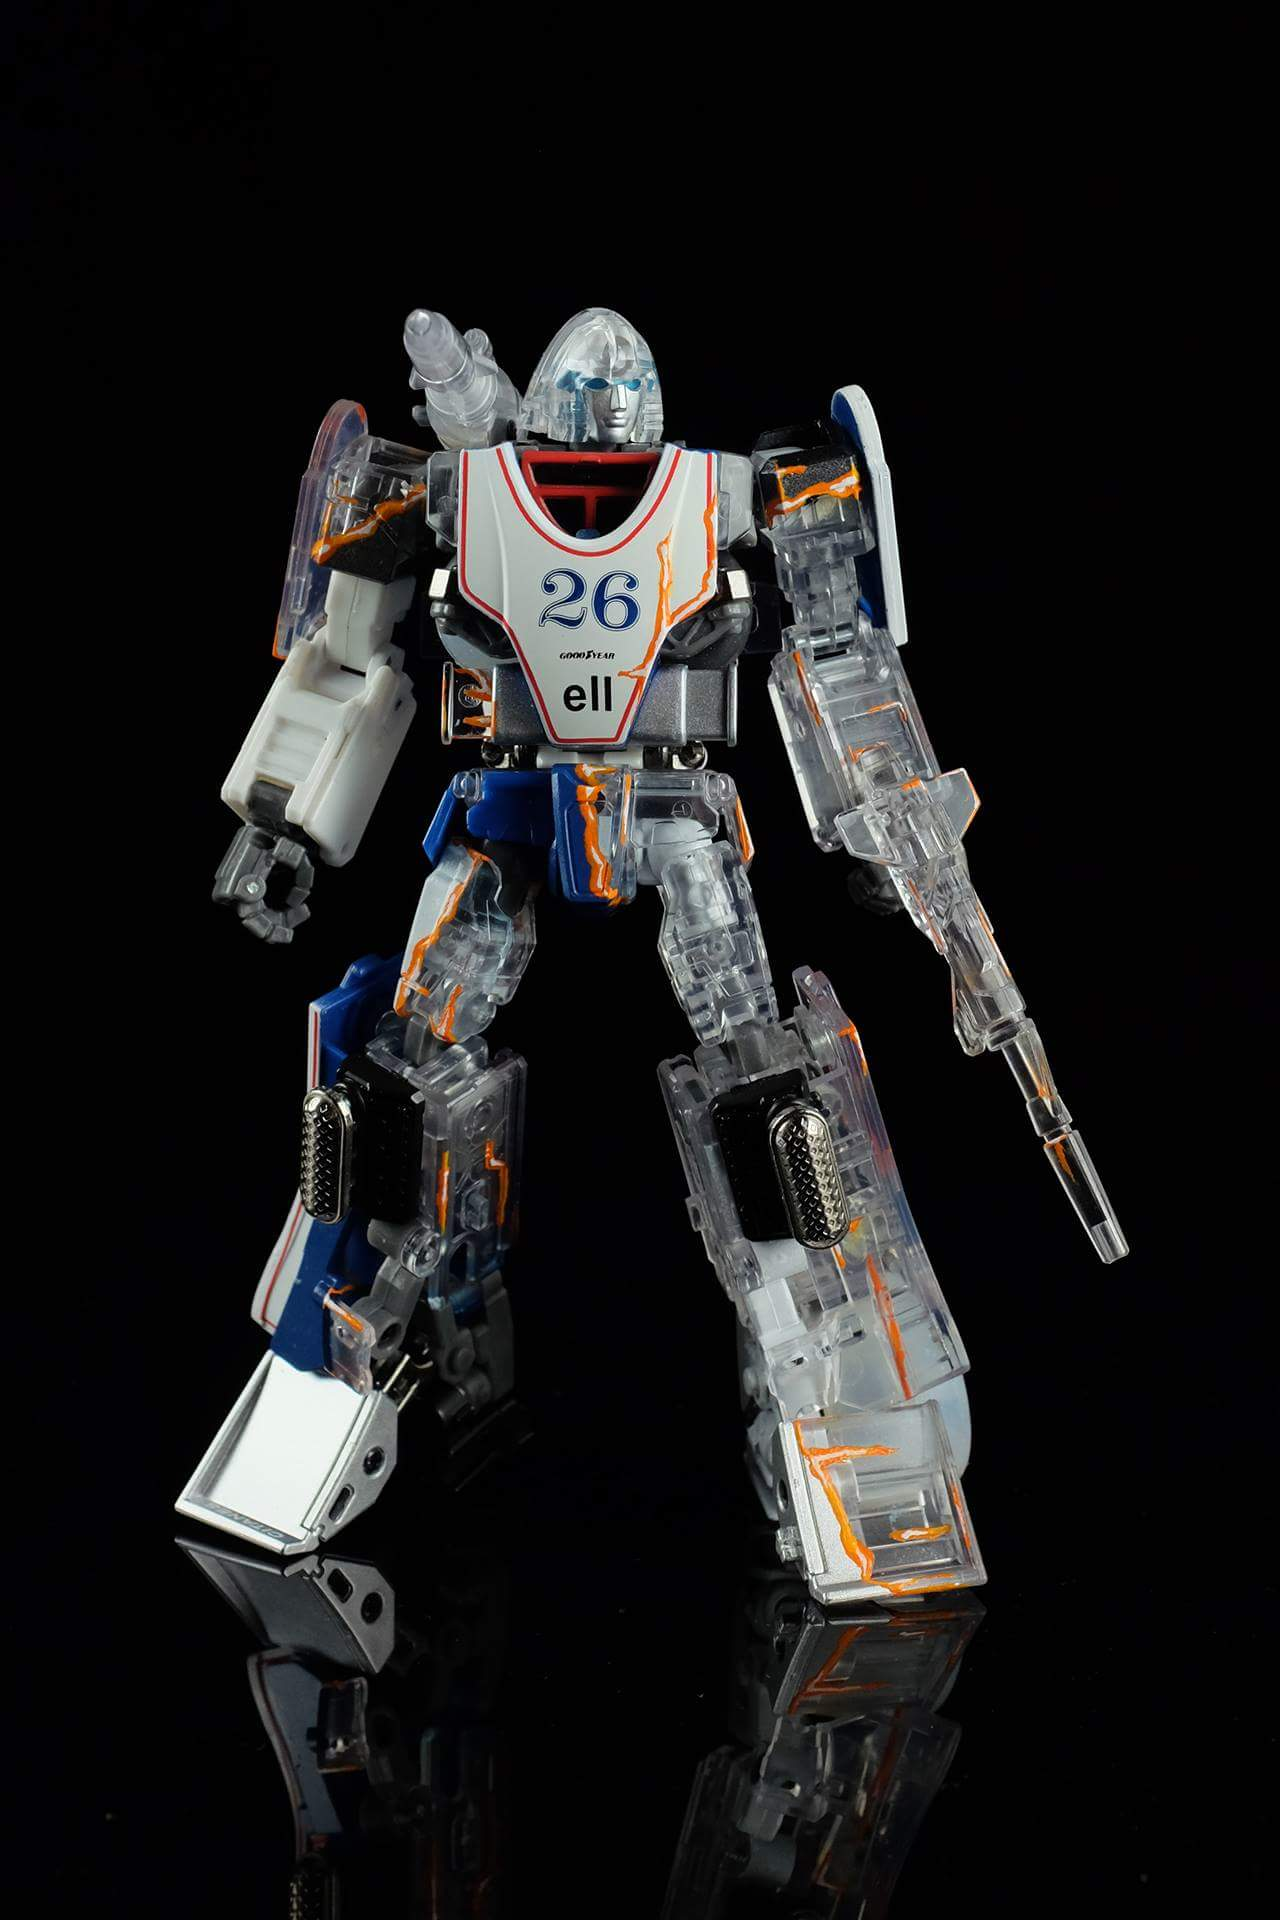 [Ocular Max] Produit Tiers - PS-01 Sphinx (aka Mirage G1) + PS-02 Liger (aka Mirage Diaclone) - Page 3 UP1V2FH1